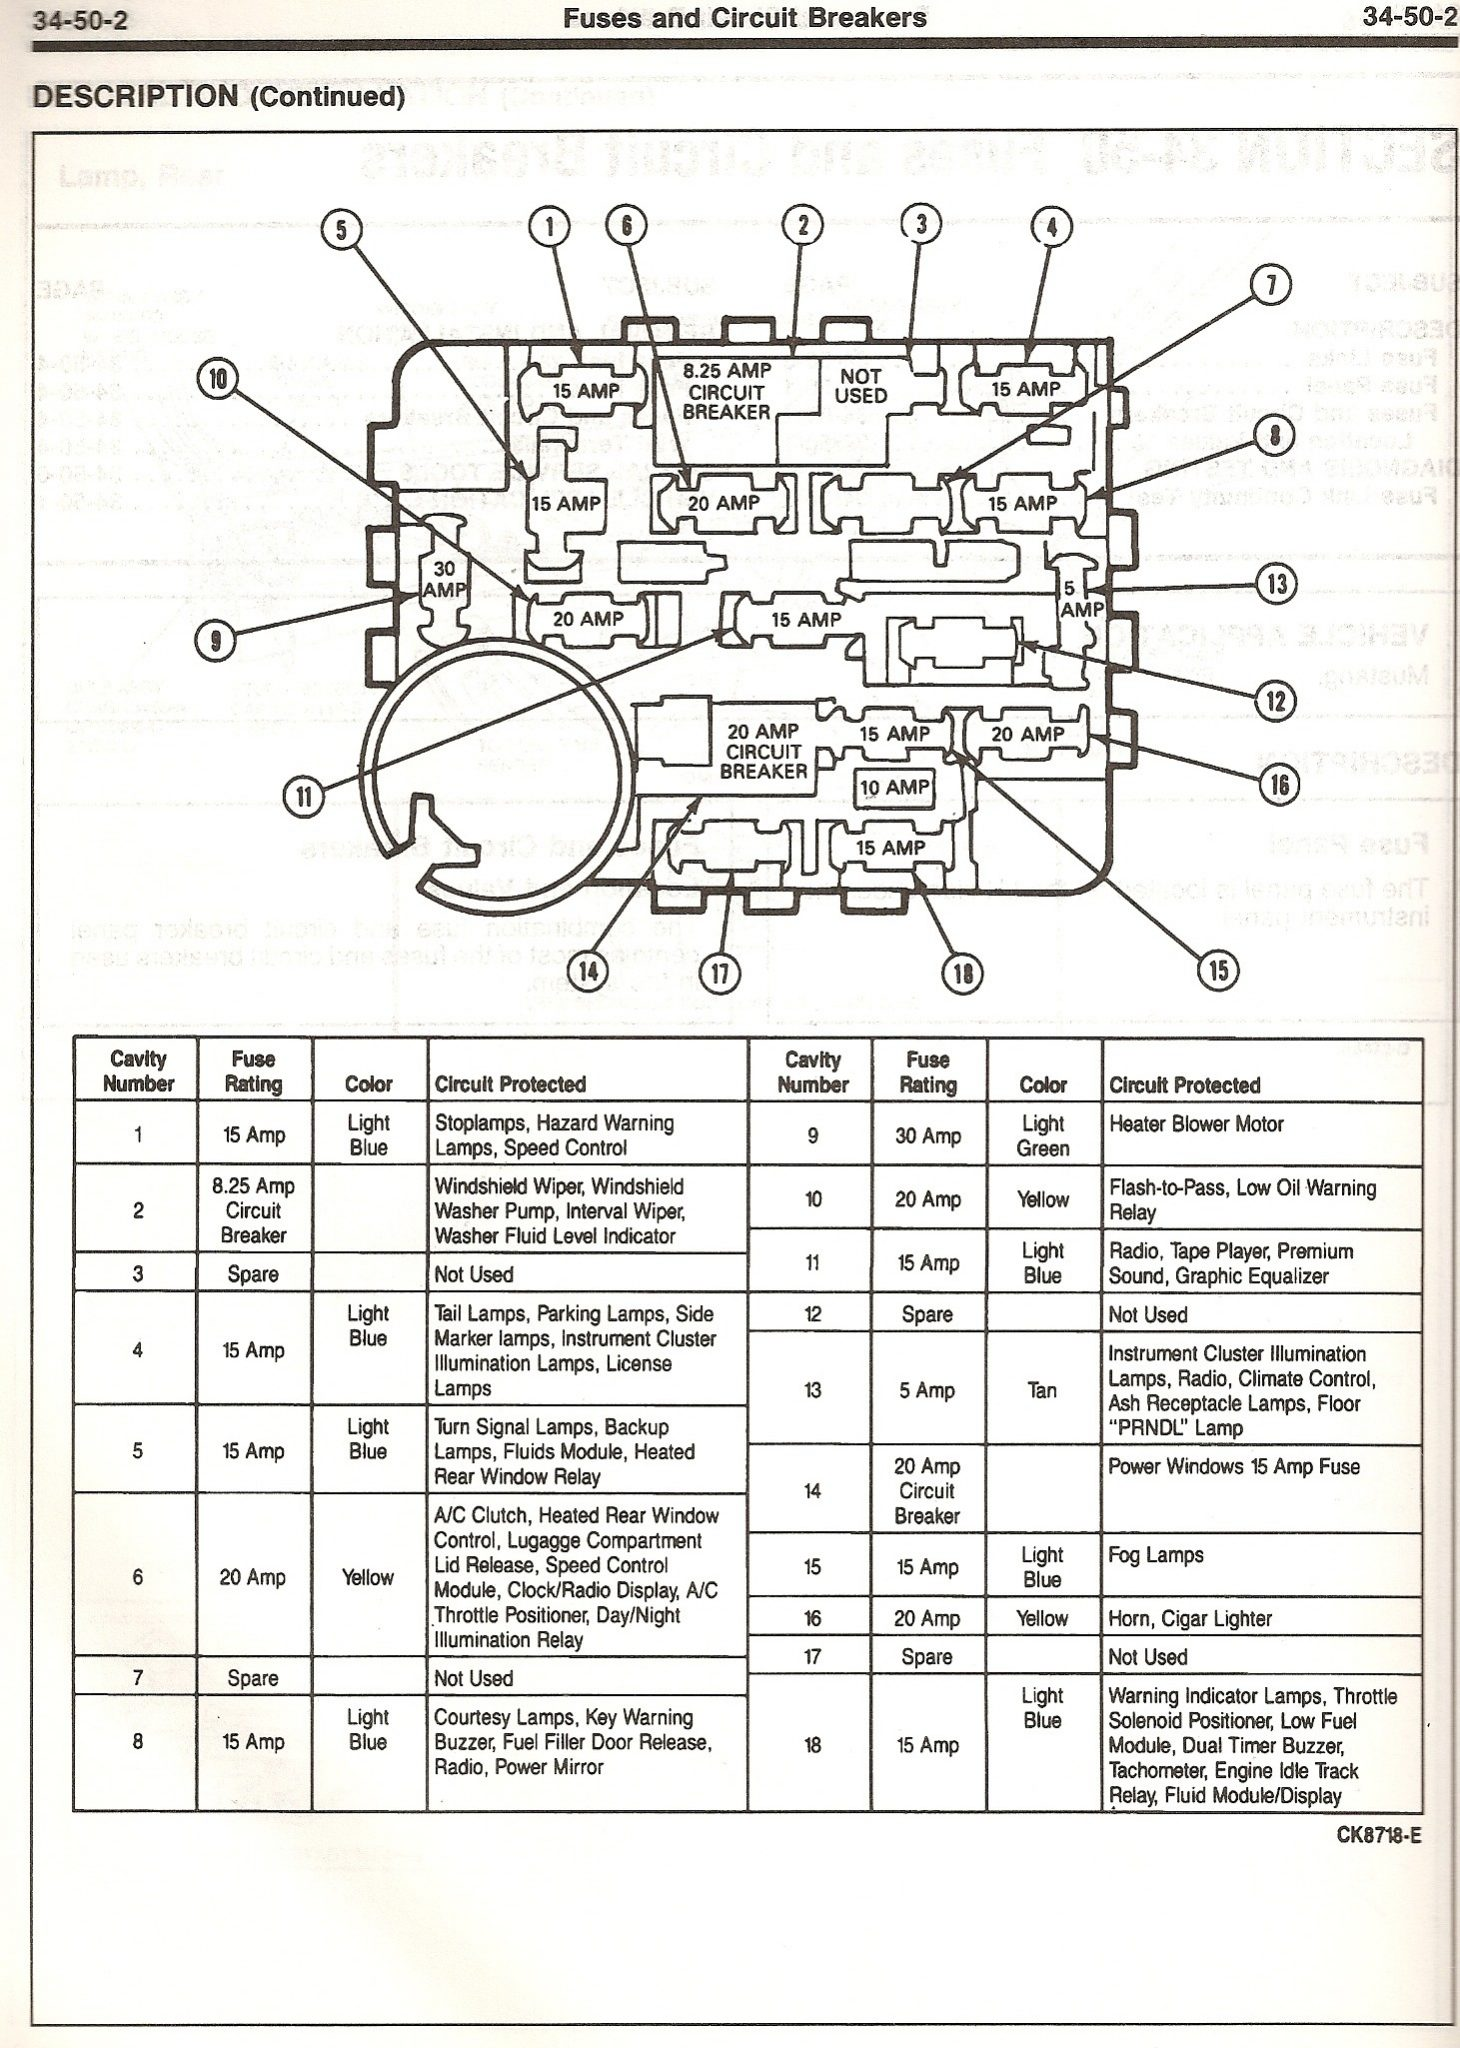 2001 dodge ram 1500 headlight switch wiring diagram wirdig 90 dodge ram van fuse box diagram image wiring diagram amp engine